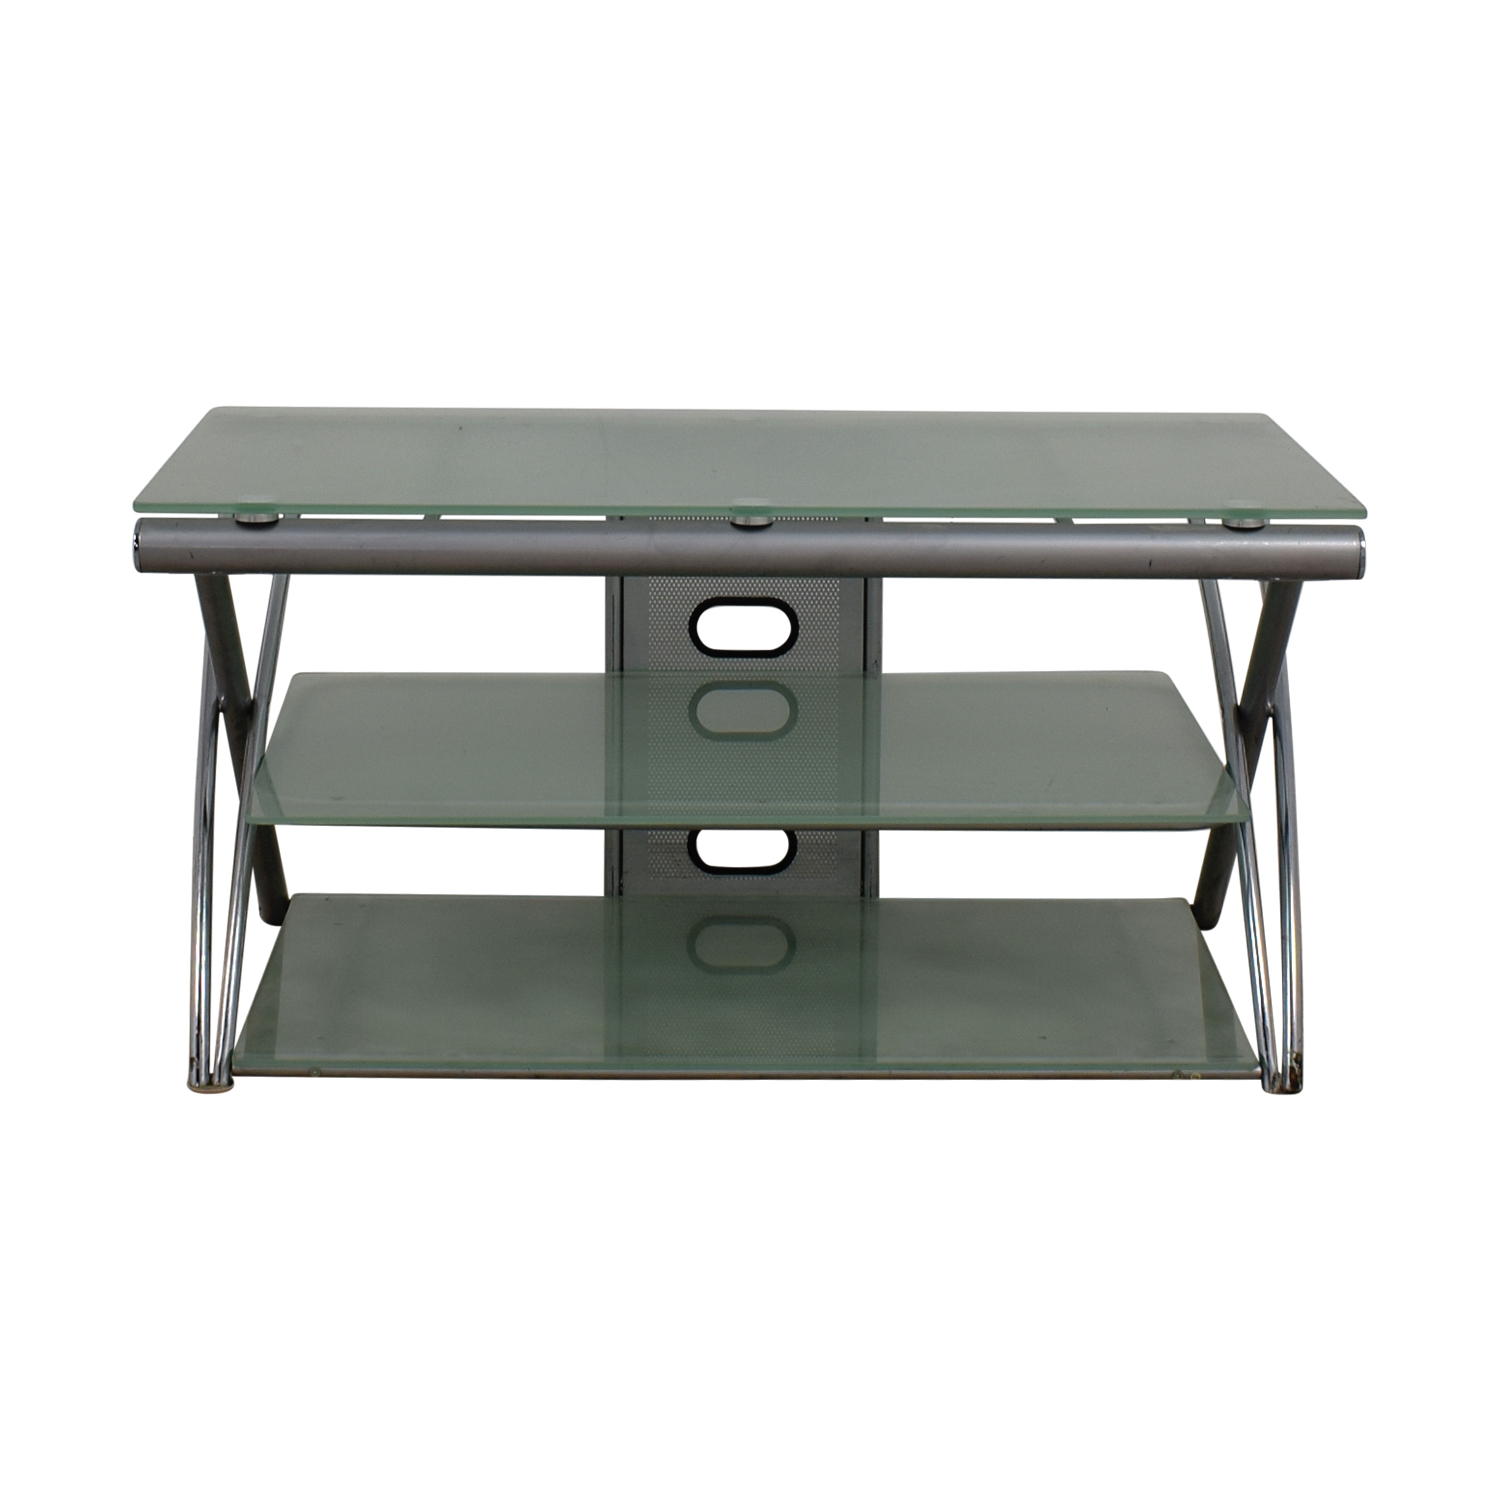 Tinted Glass and Metal TV Stand for sale